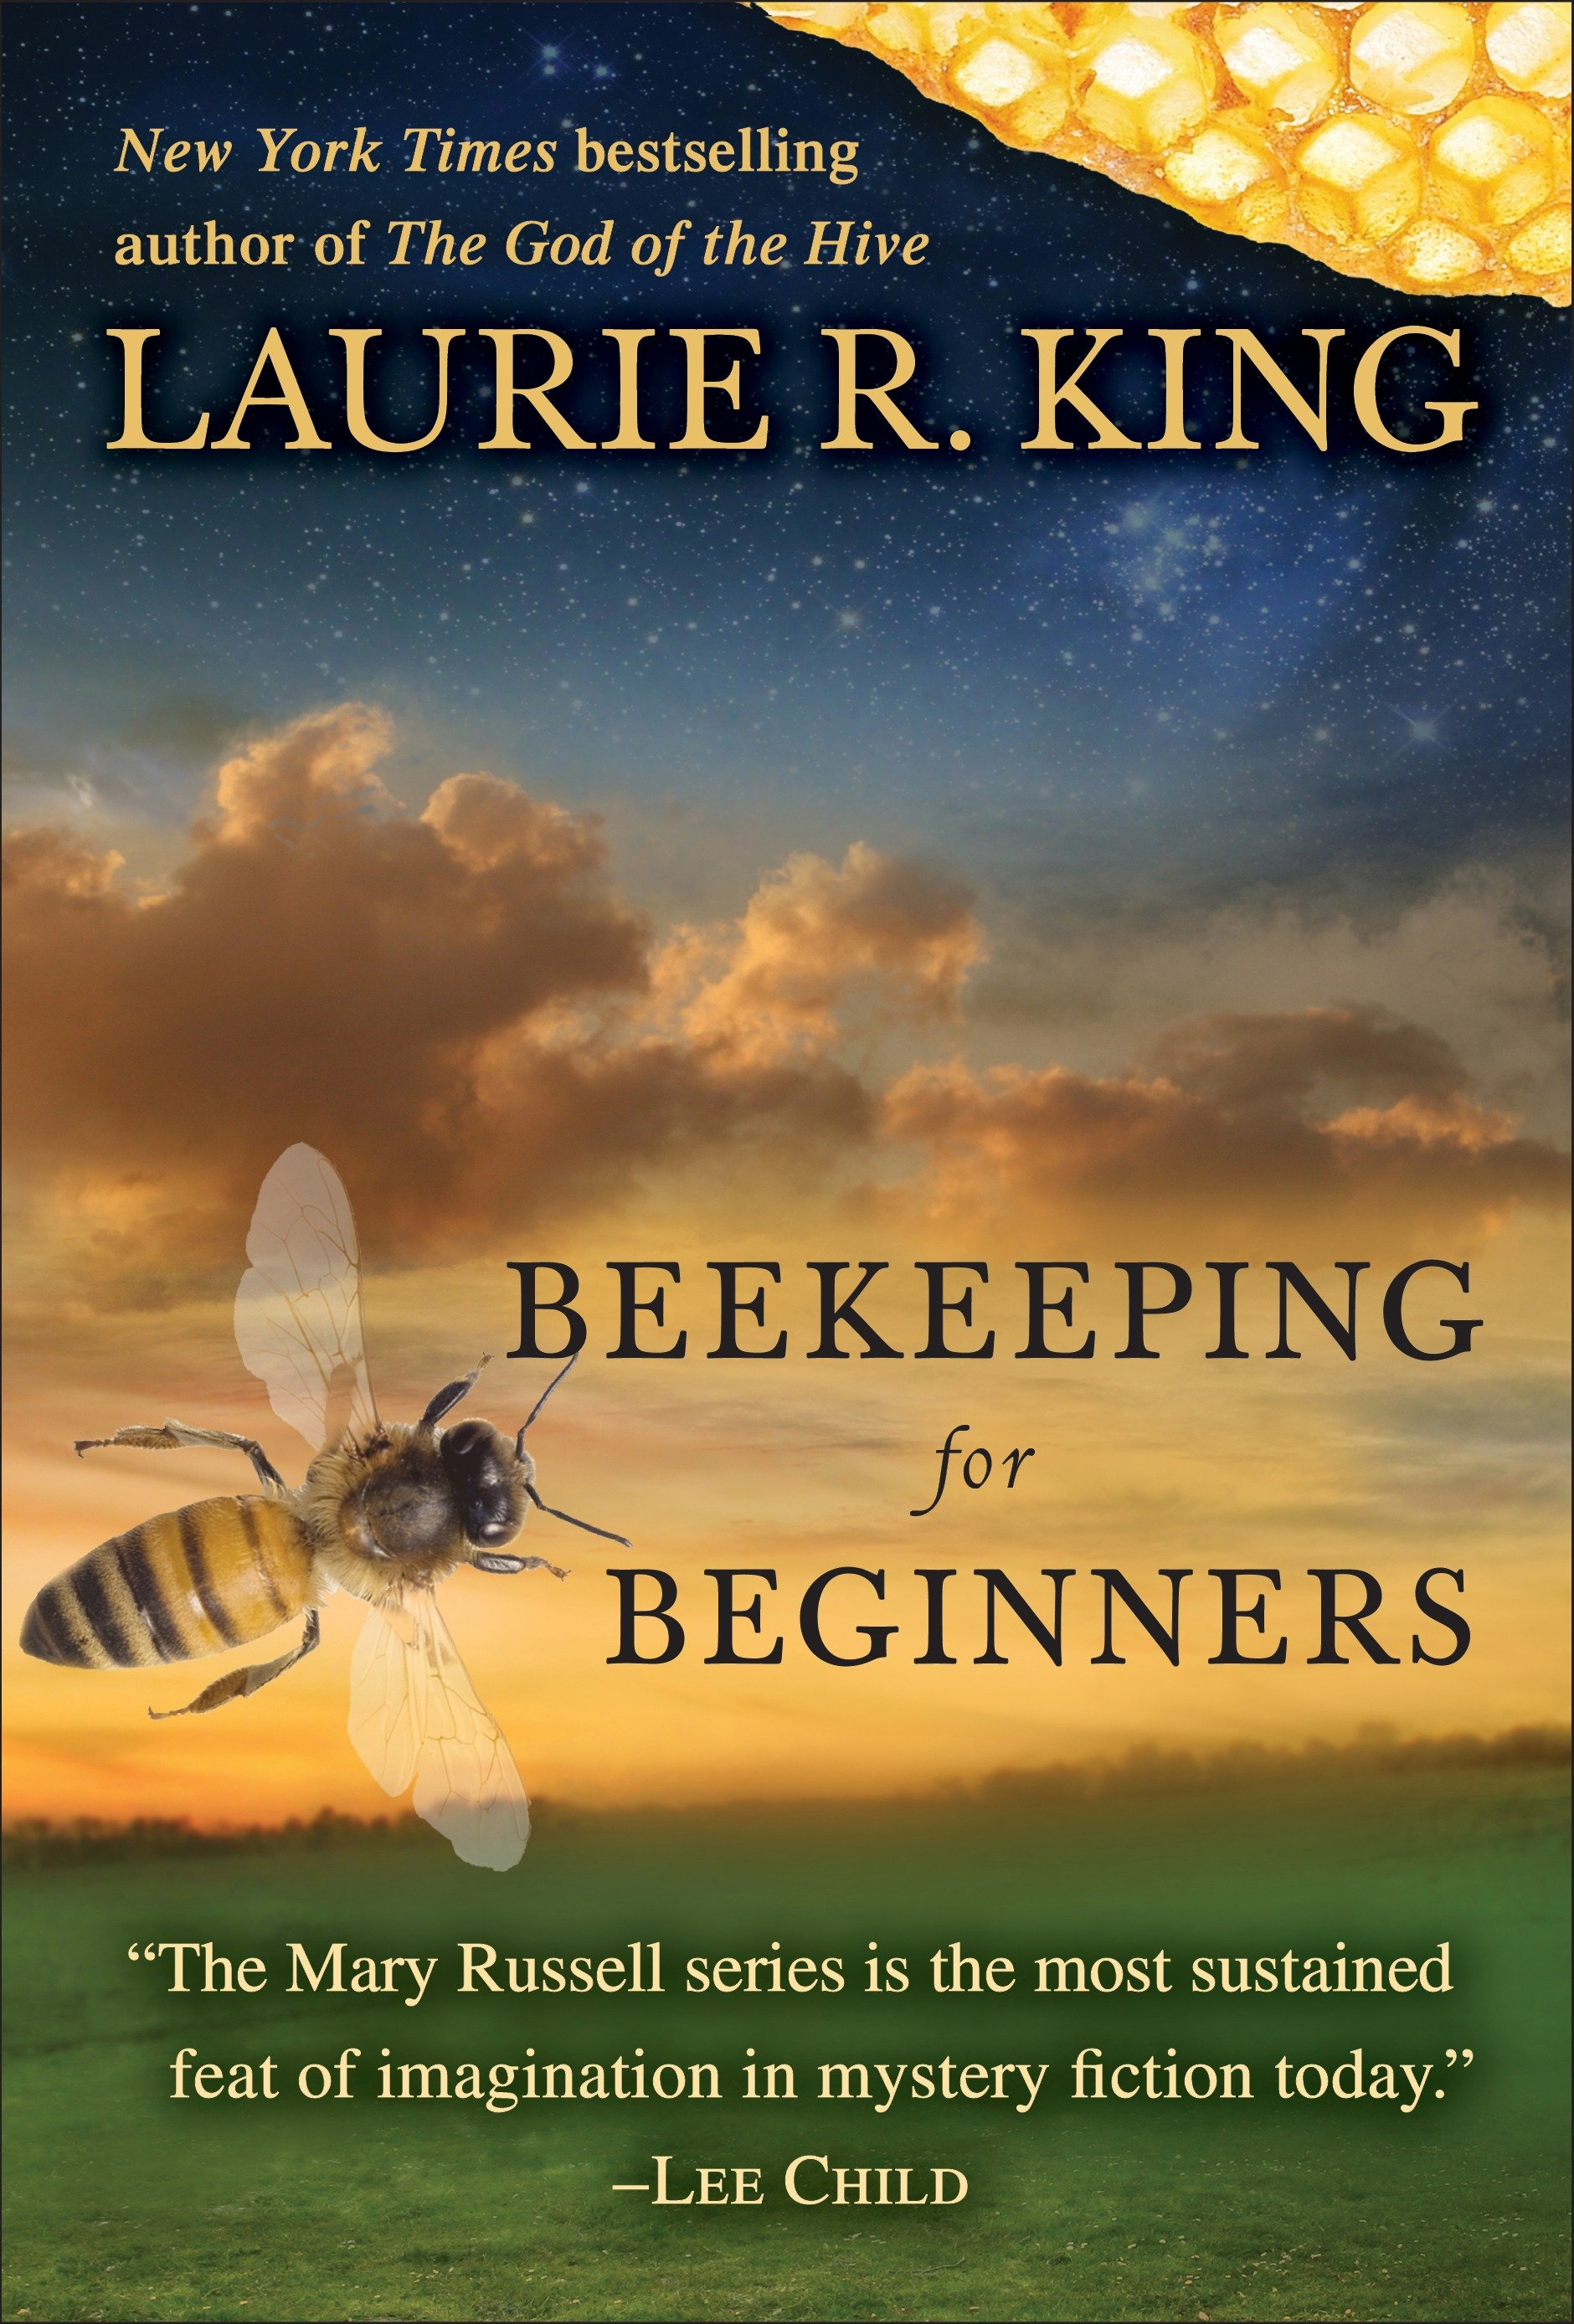 Beekeeping for beginners cover image